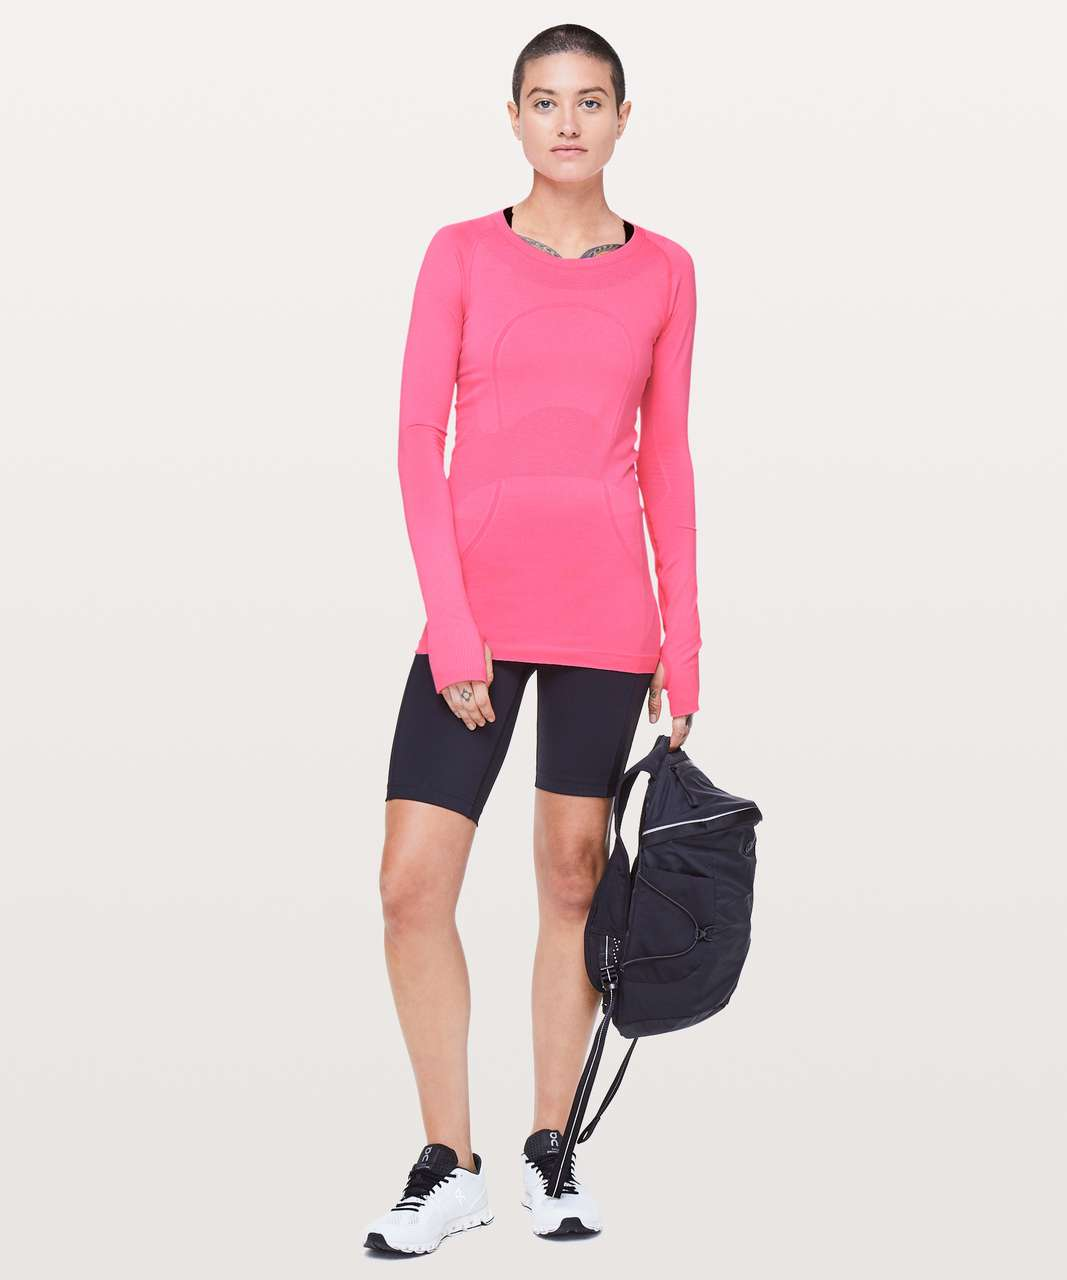 Lululemon Swiftly Tech Long Sleeve Crew - Zing Pink Light / Zing Pink Light